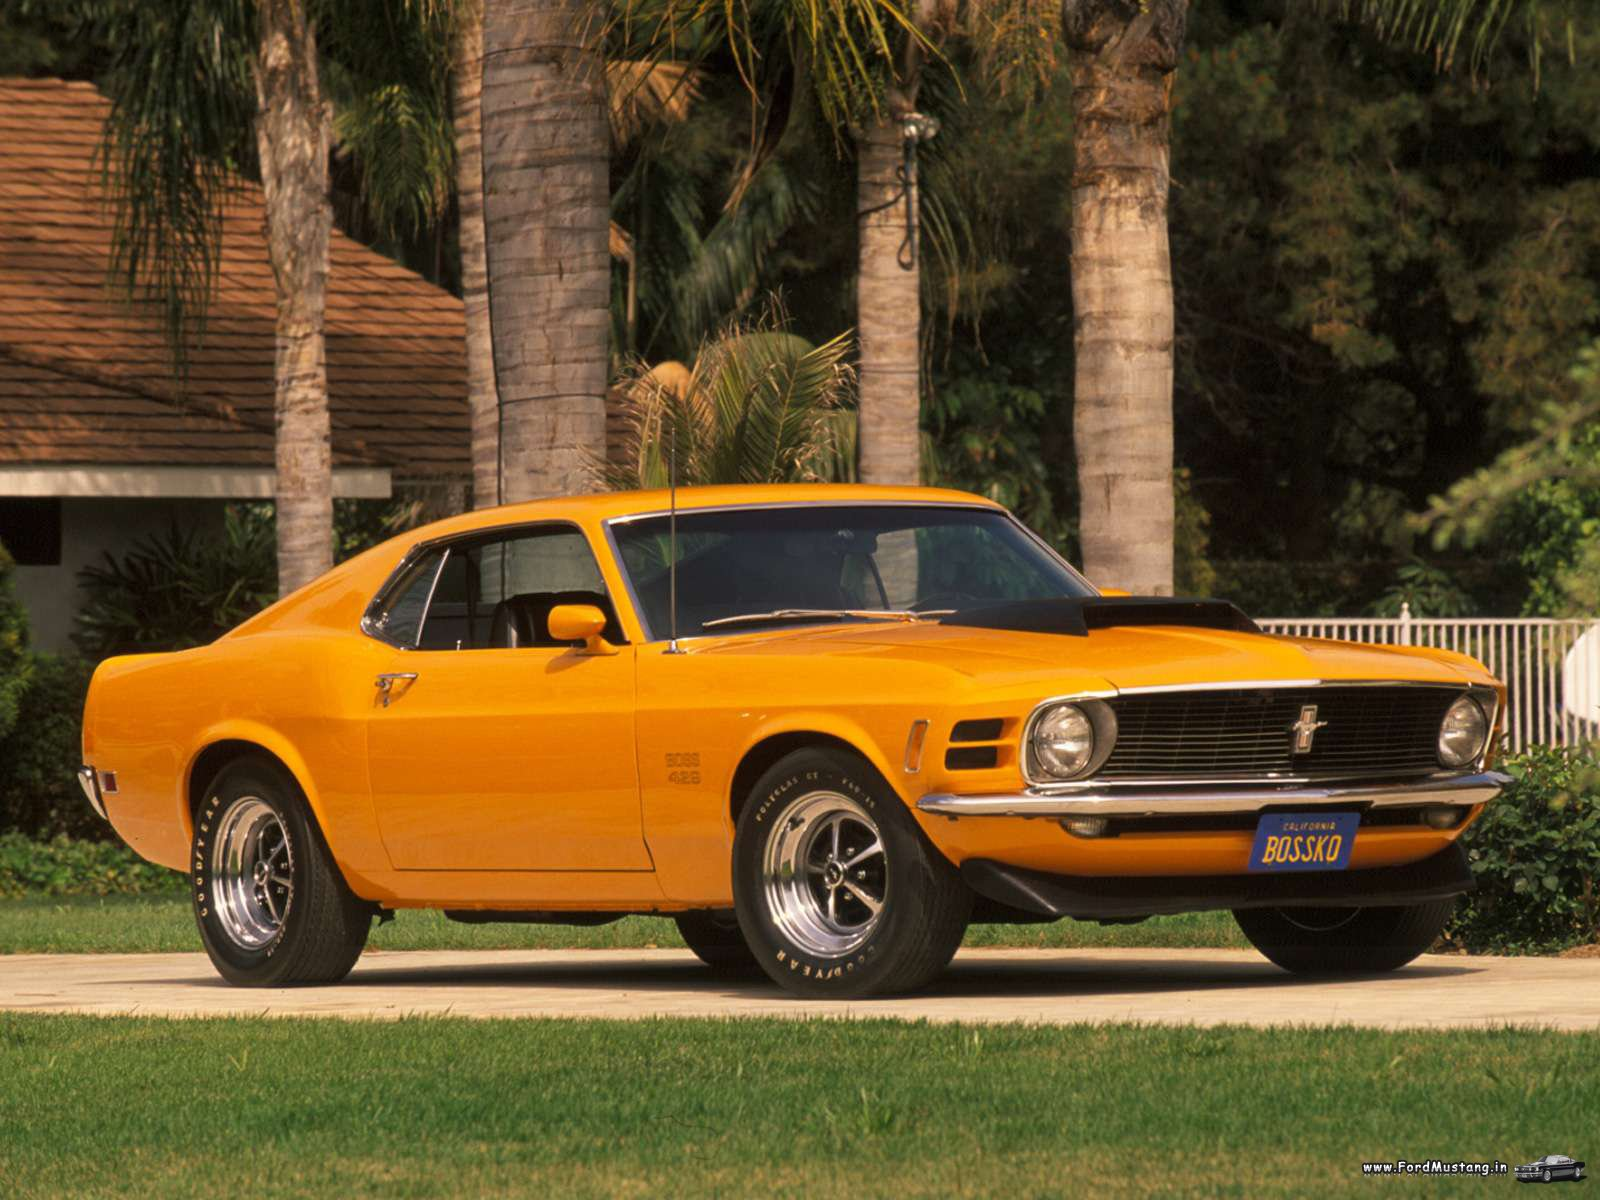 Ford Mustang Boss 302 1970 1600 215 1200 Wallpapers Ford